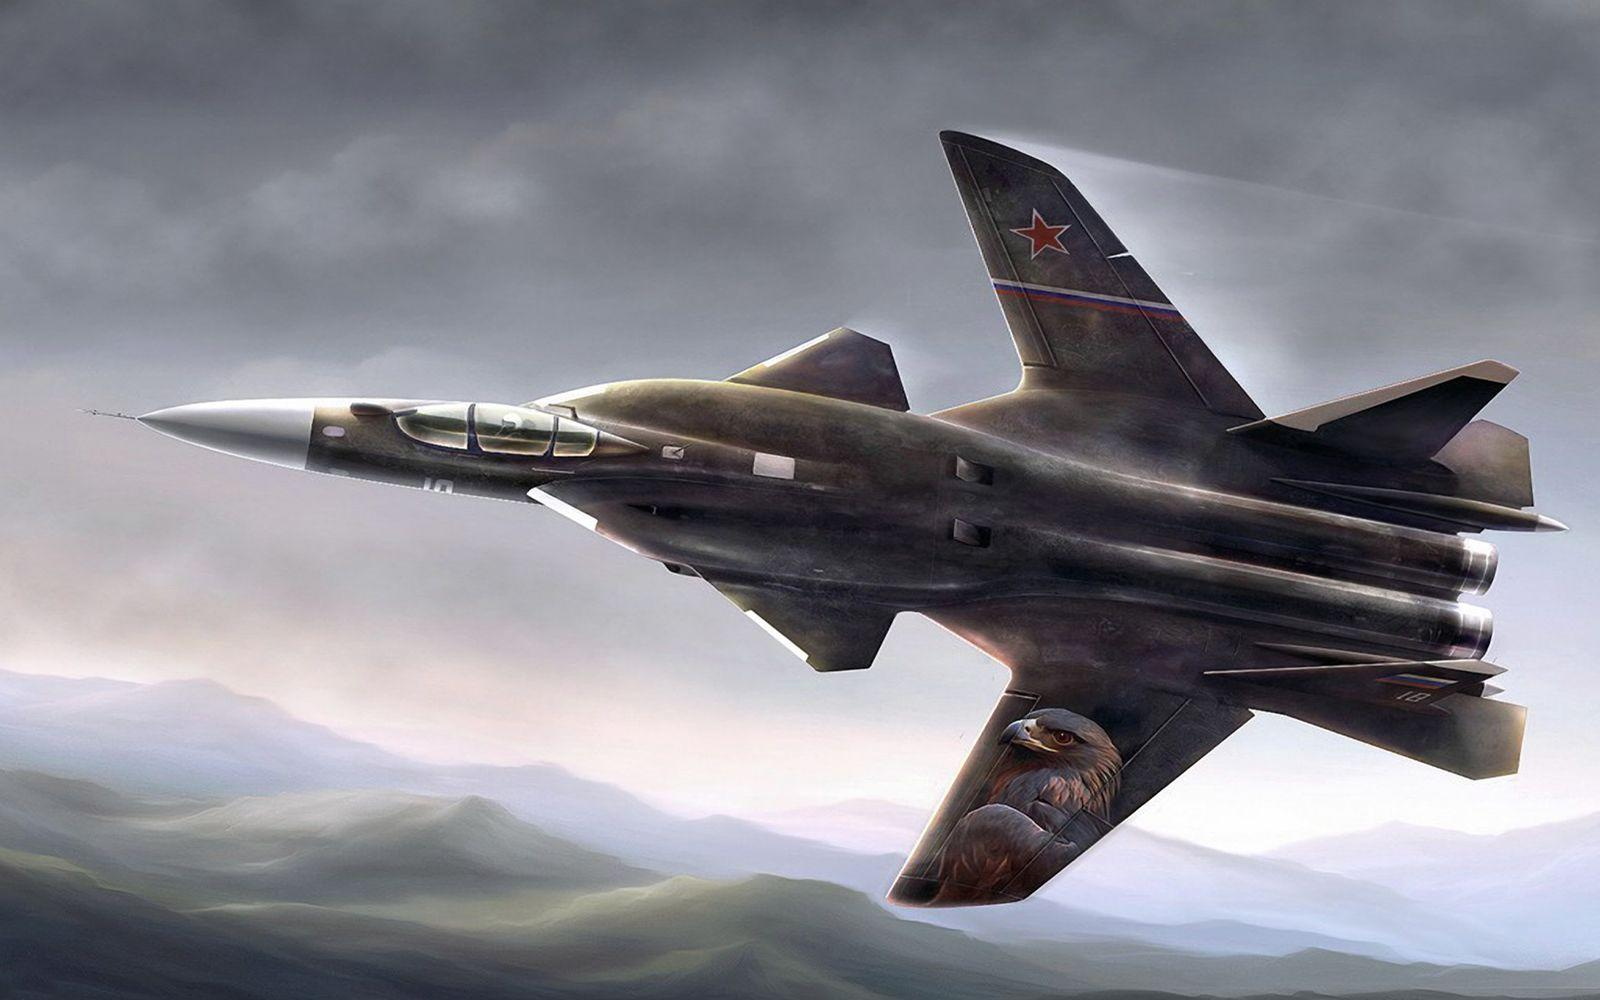 Sukhoi Su-47 Berkut | Fighter Aircraft | Pinterest | Sukhoi su 47 ...